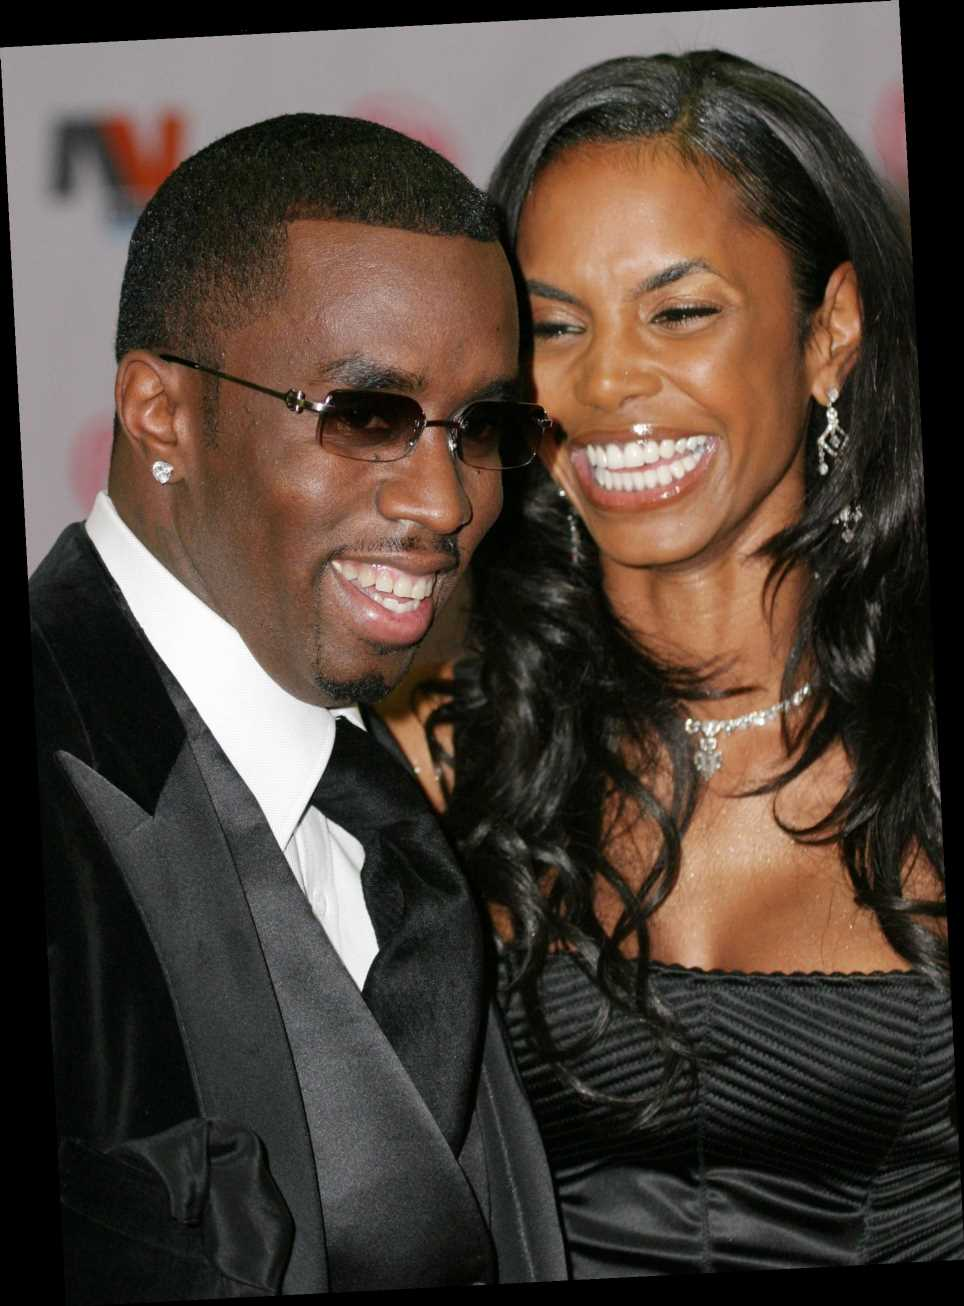 Sean 'Diddy' Combs Honors Ex Kim Porter on 1 Year Anniversary of Her Death: 'I Miss You So Much'